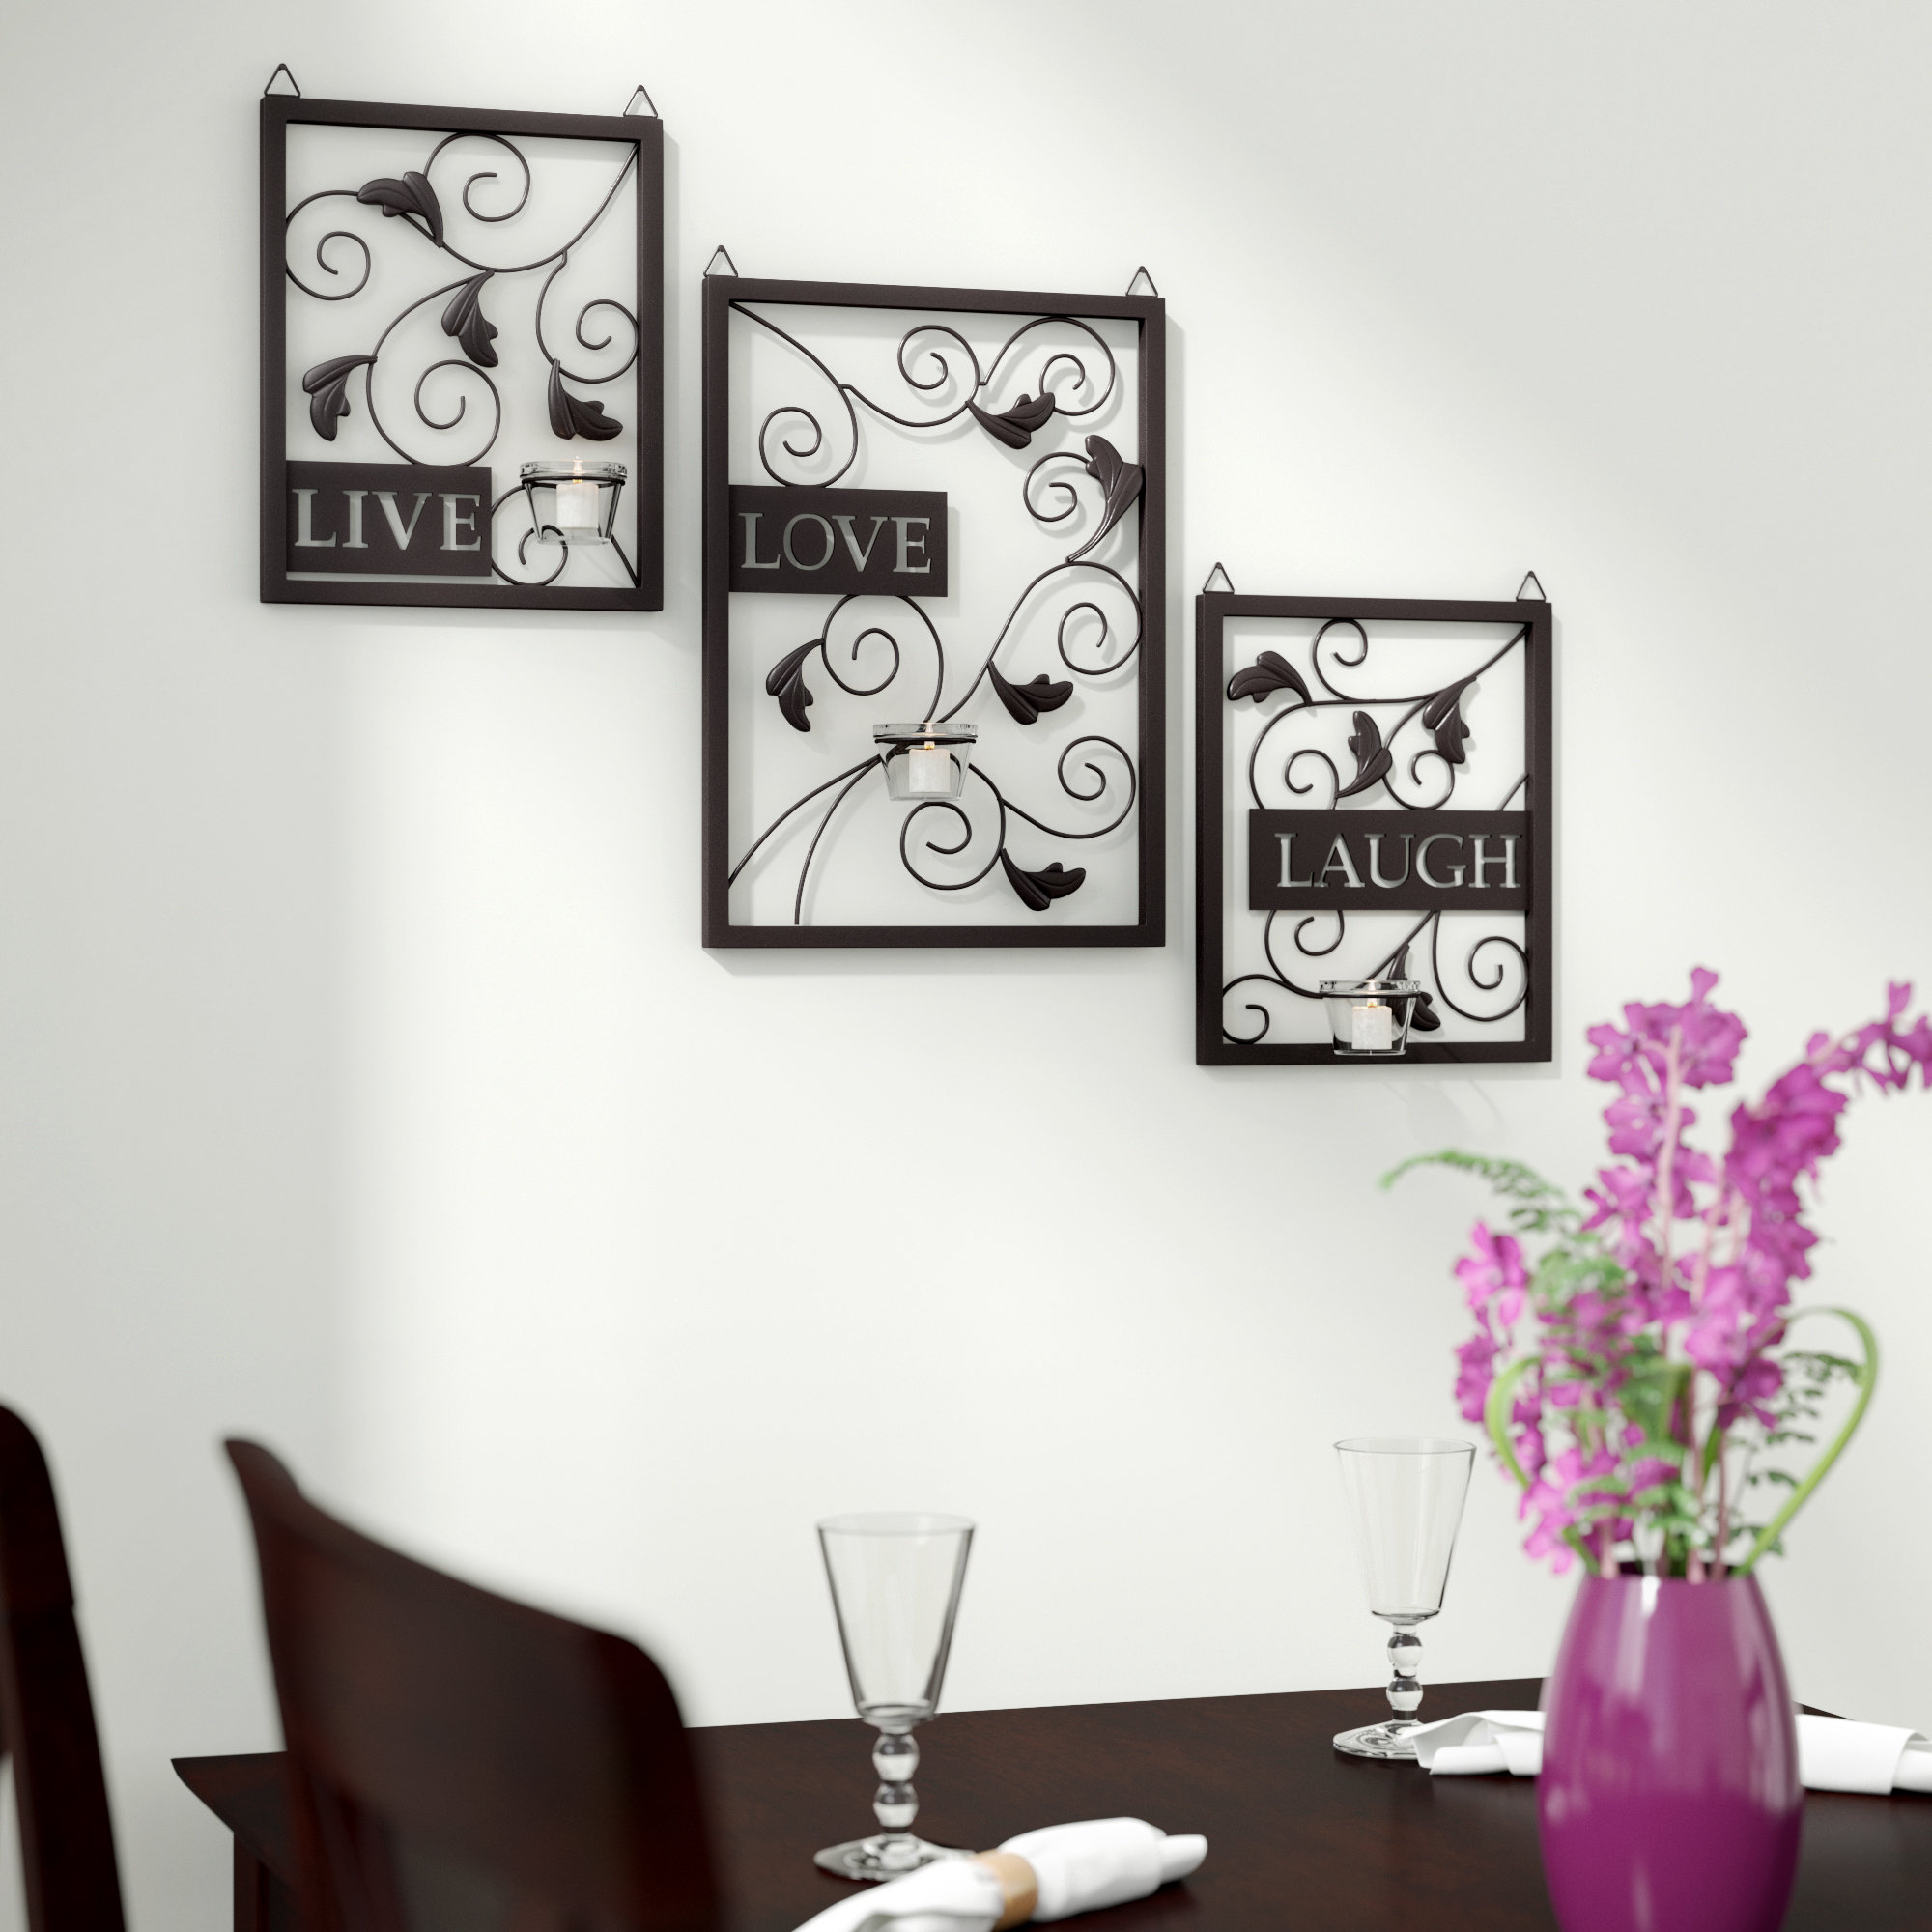 Trendy Winston Porter Live Love Laugh 3 Piece Black Wall Décor Set For Vase And Bowl Wall Decor By Alcott Hill (Gallery 8 of 20)